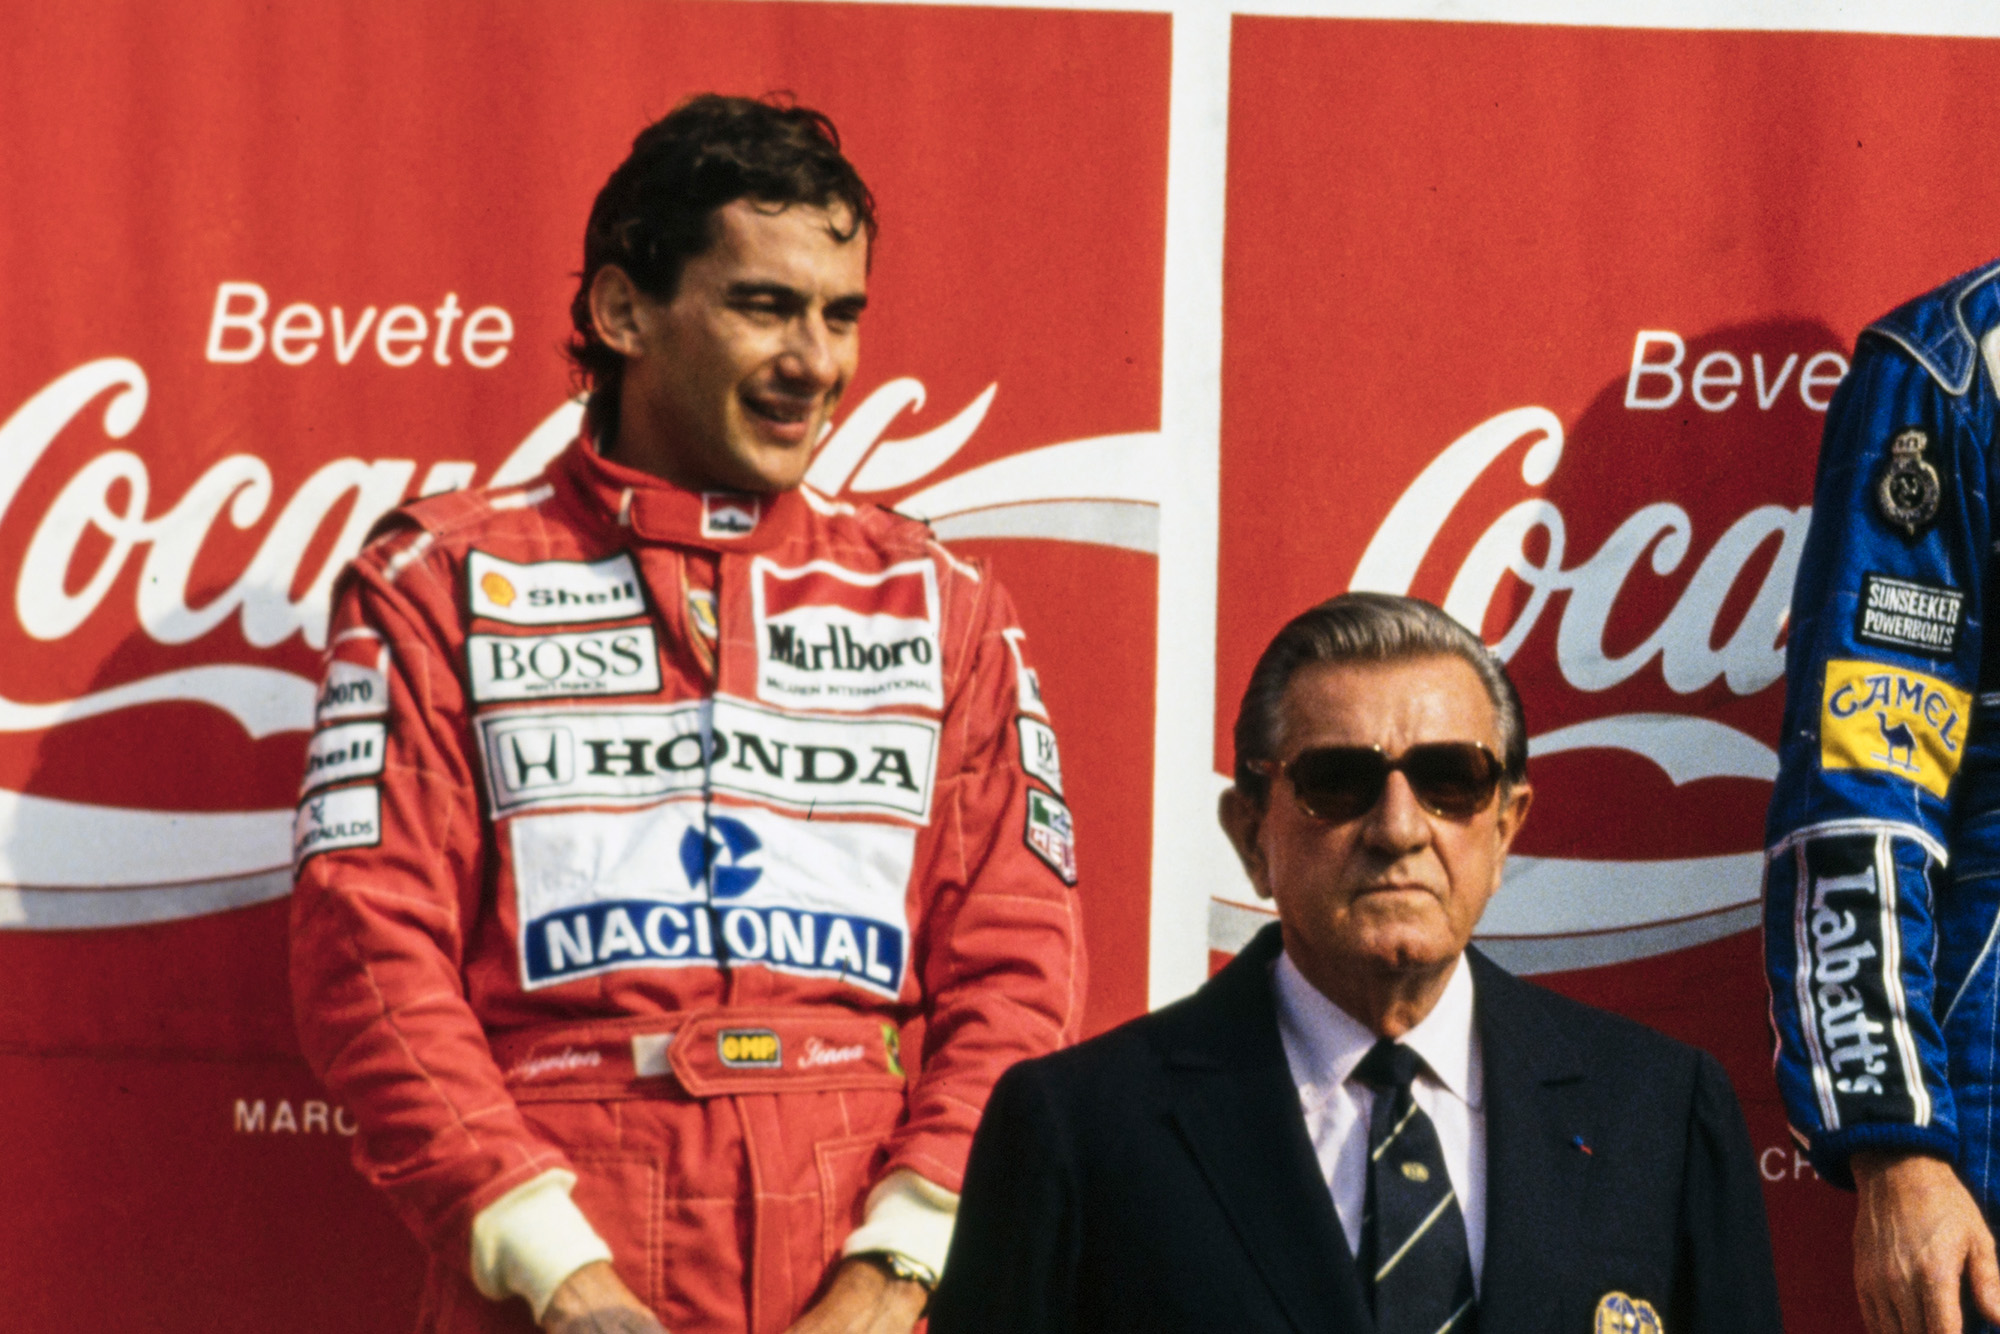 Ayrton Senna on the podium next to Jean Marie Balestre at the 1991 Italian Grand Prix